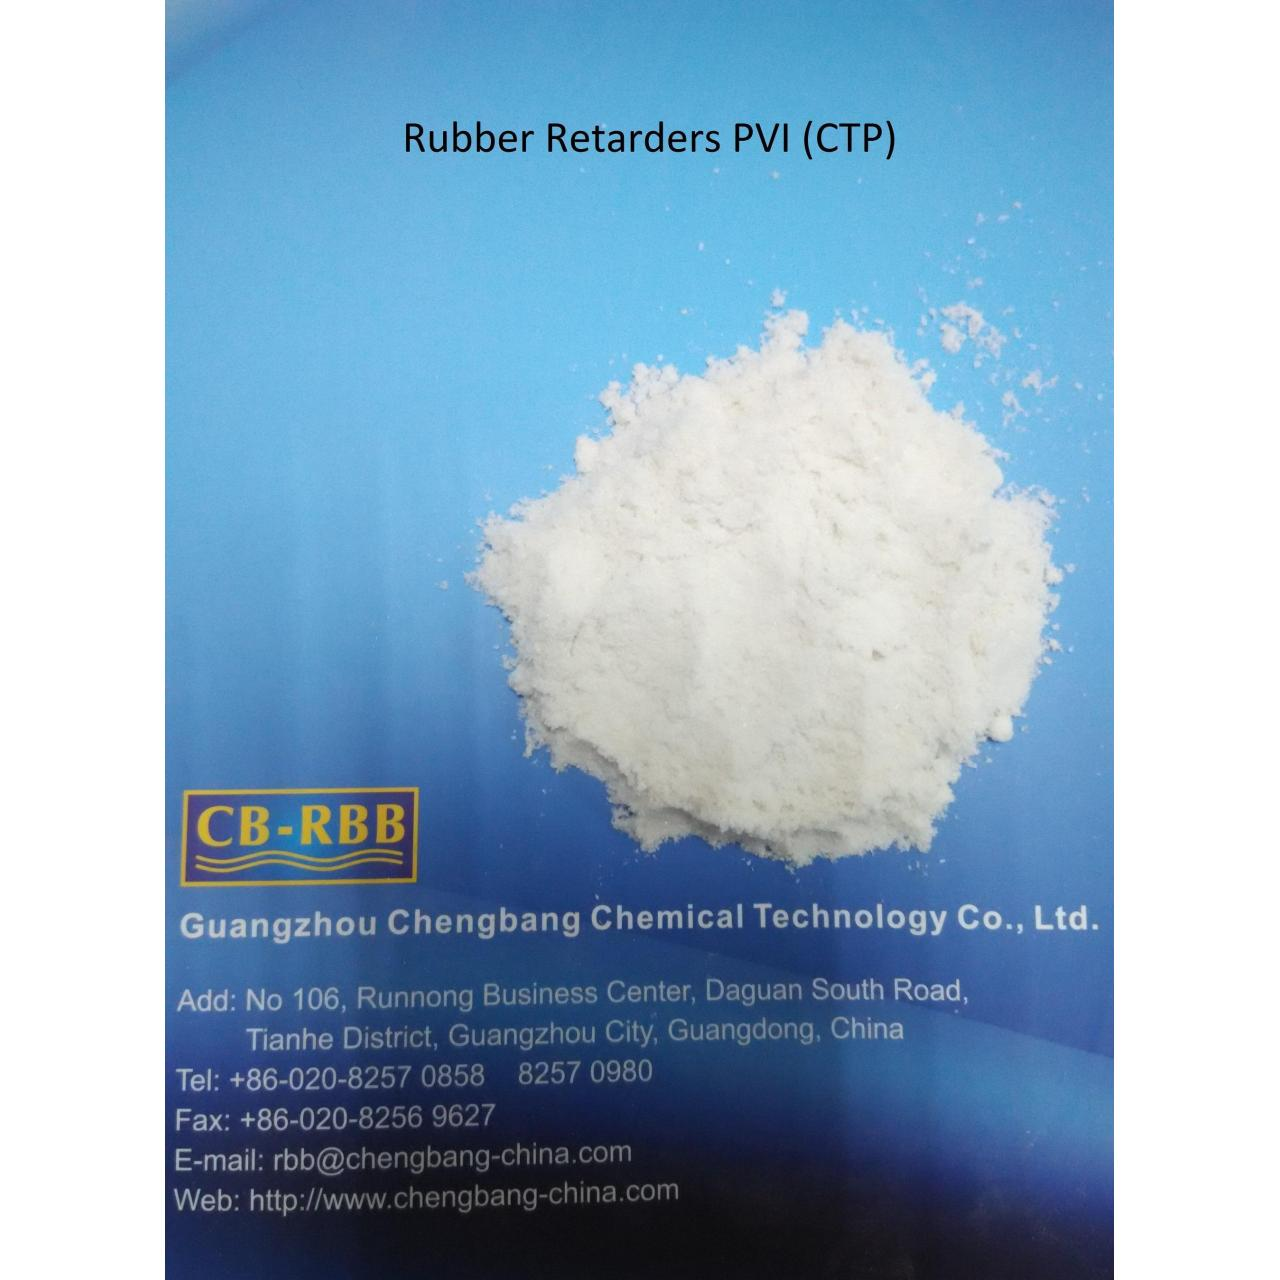 Quality Rubber Retarders PVI (CTP) for sale